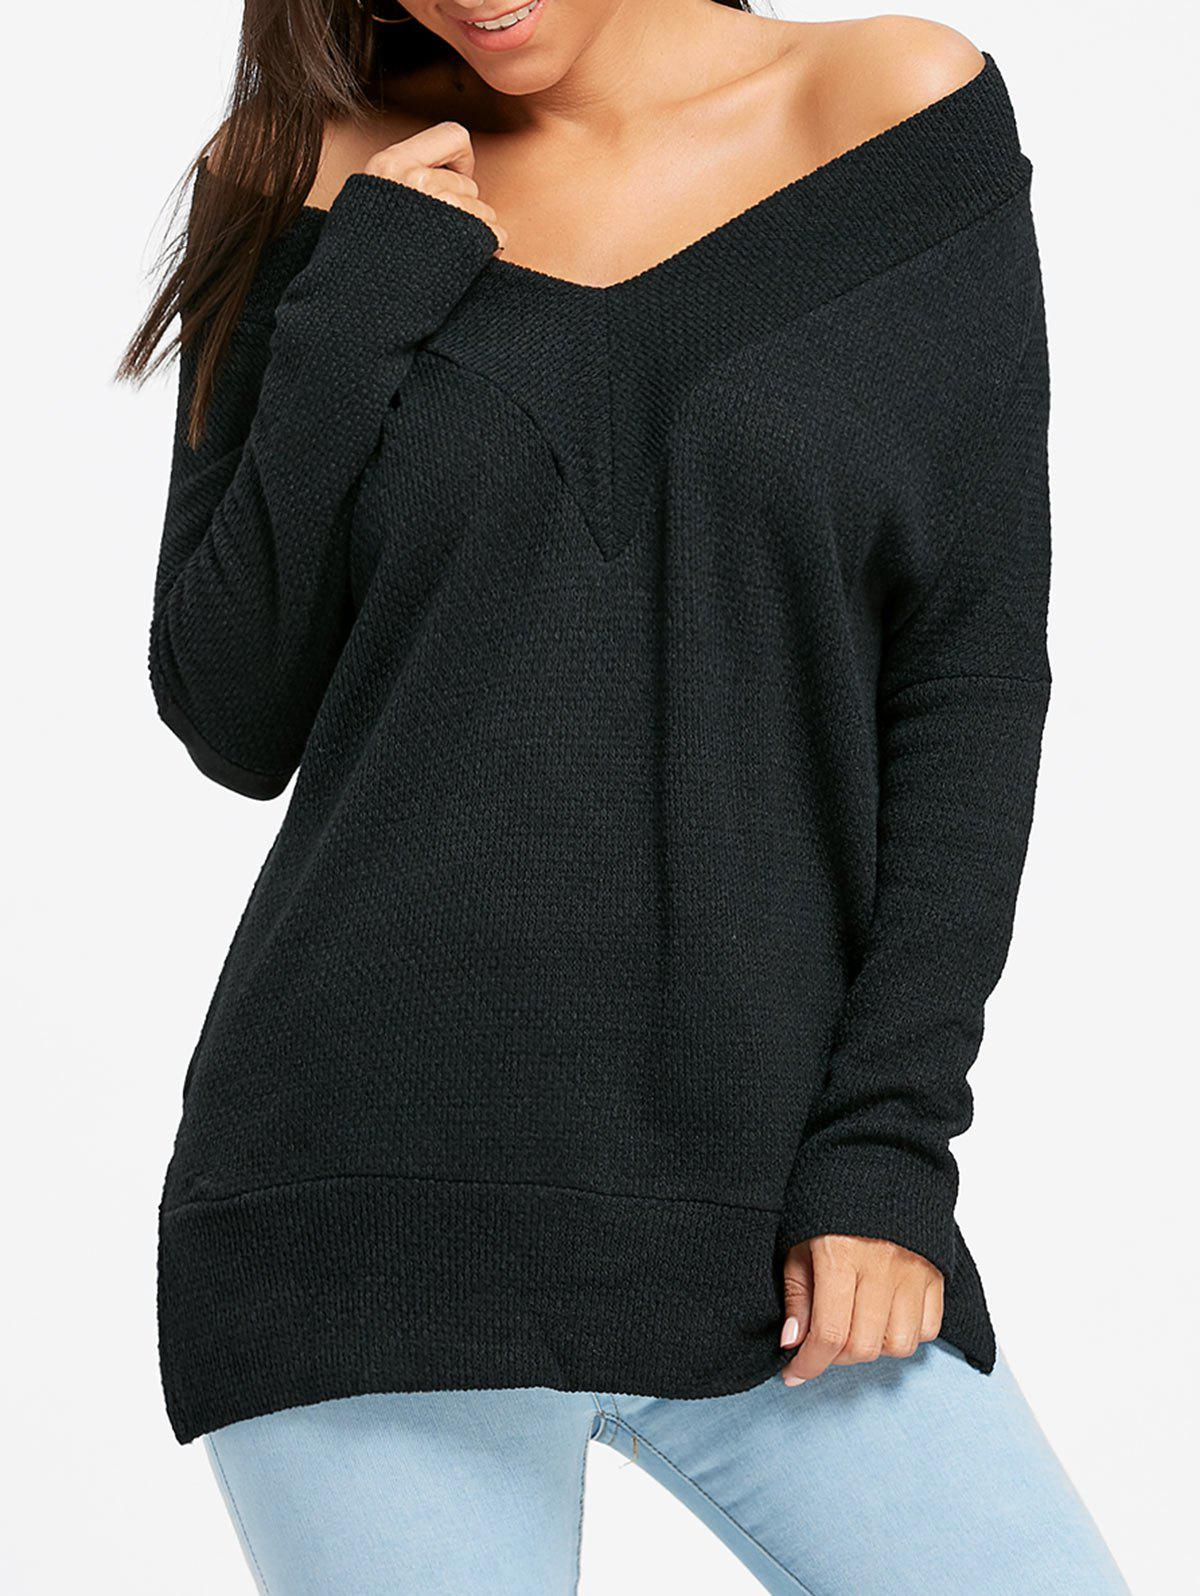 V Neck Side Slit Oversized Tunic SweaterWOMEN<br><br>Size: S; Color: BLACK; Type: Pullovers; Material: Polyester; Sleeve Length: Full; Collar: V-Neck; Style: Fashion; Pattern Type: Solid; Season: Fall,Spring; Weight: 0.3700kg; Package Contents: 1 x Sweater;